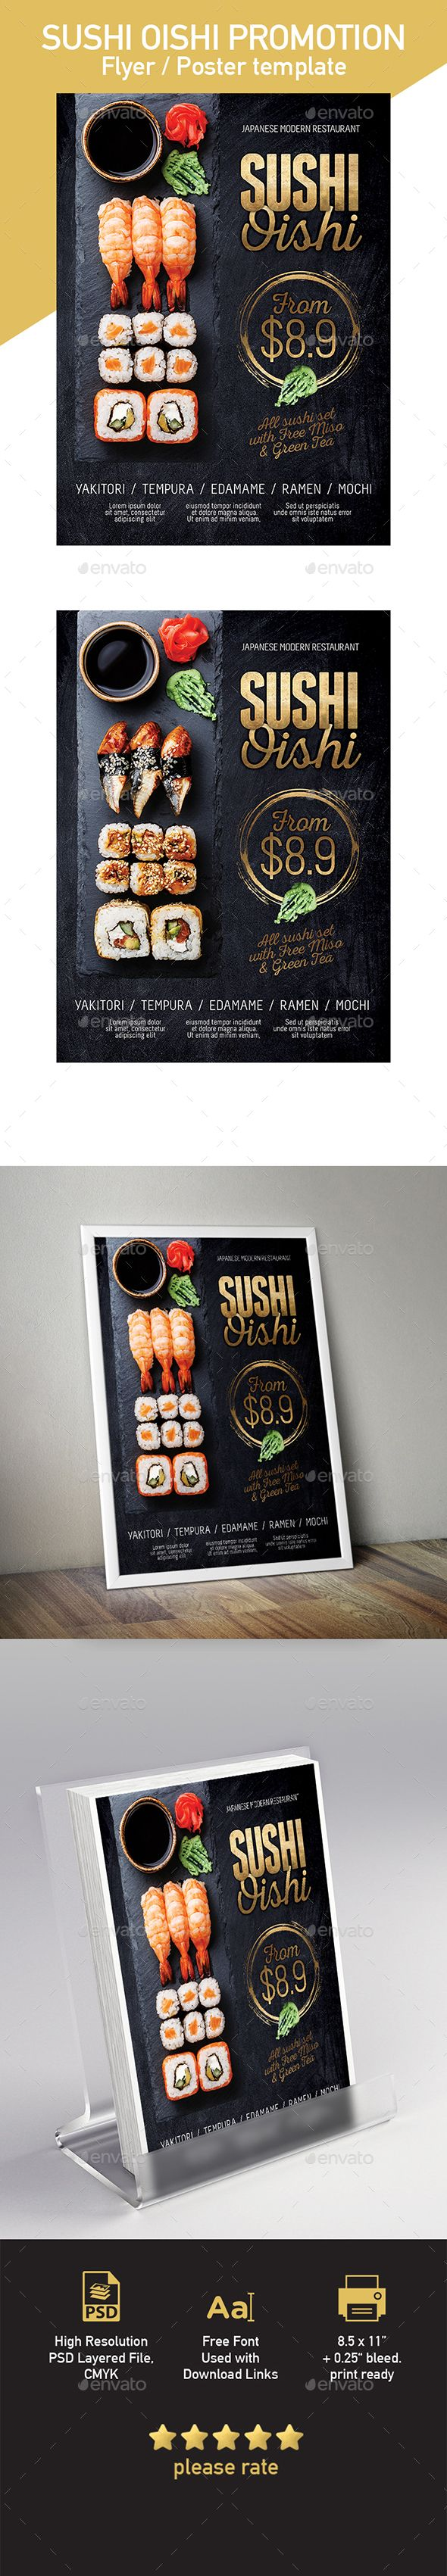 Japanese Sushi Flyer / Poster Template - Restaurant #Flyers Download here:  https://graphicriver.net/item/japanese-sushi-flyer-poster-template/20164433?ref=alena994